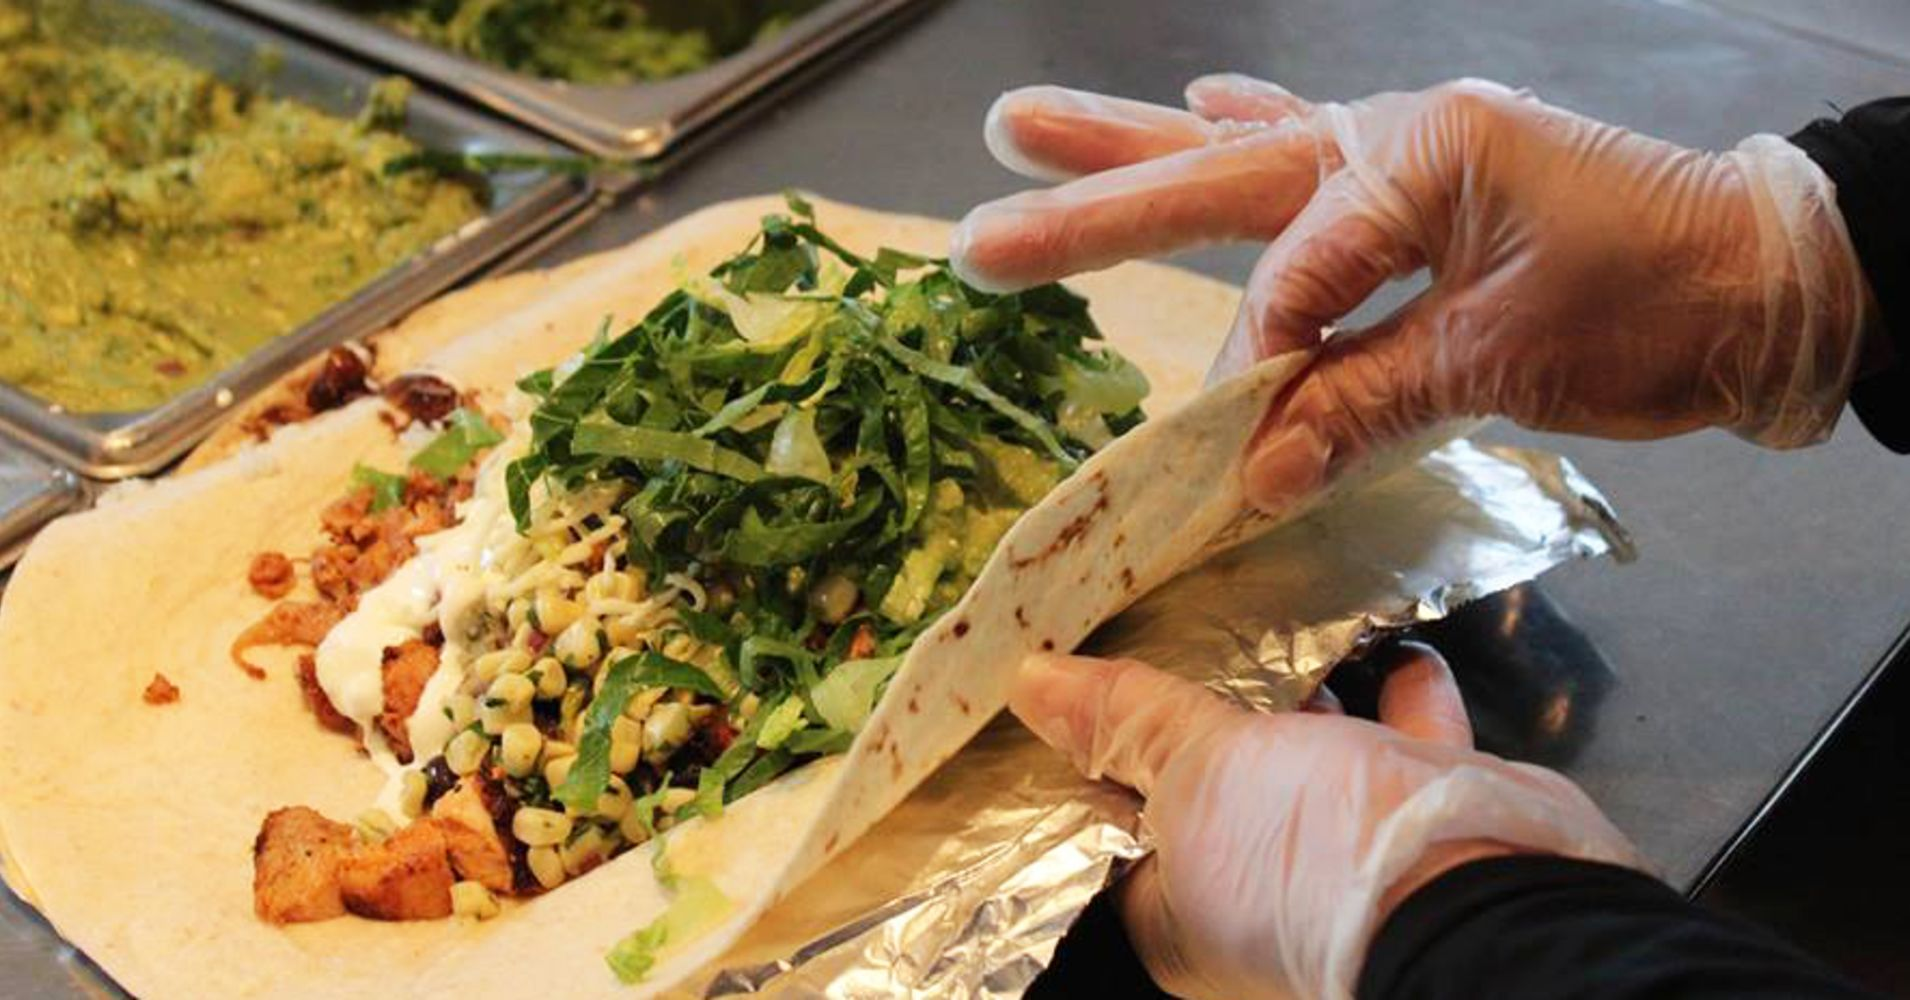 Cramer breaks down the 7 reasons why Chipotle is making a comeback